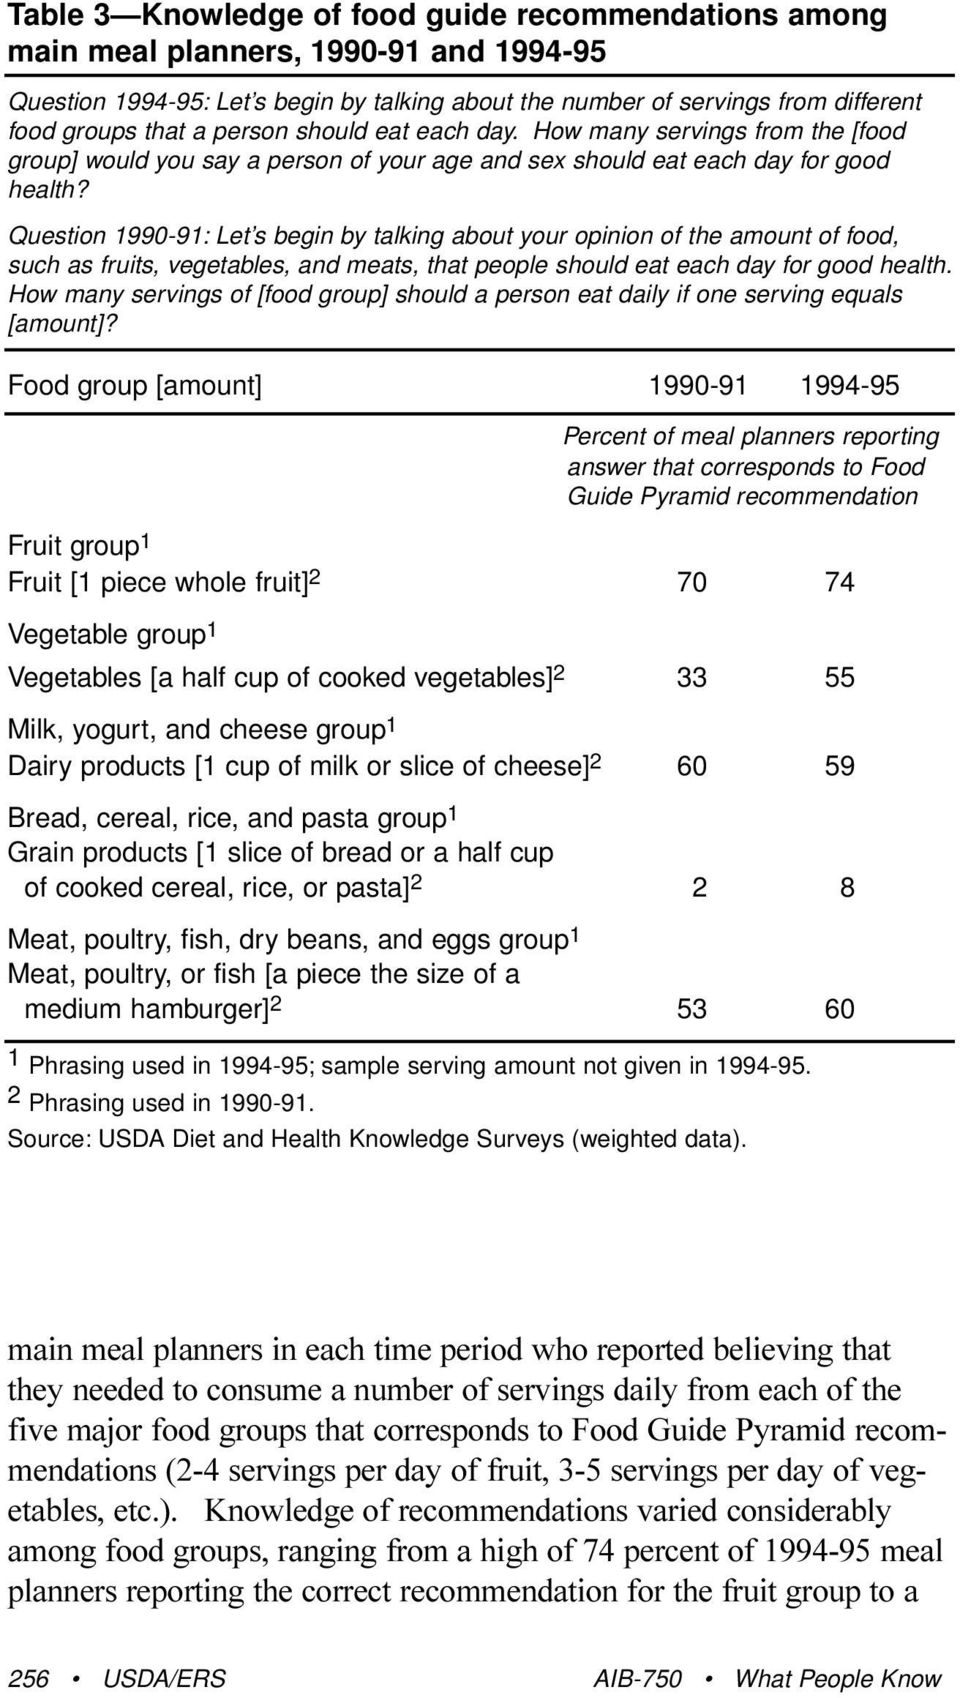 Question 1990-91: Let s begin by talking about your opinion of the amount of food, such as fruits, vegetables, and meats, that people should eat each day for good health.